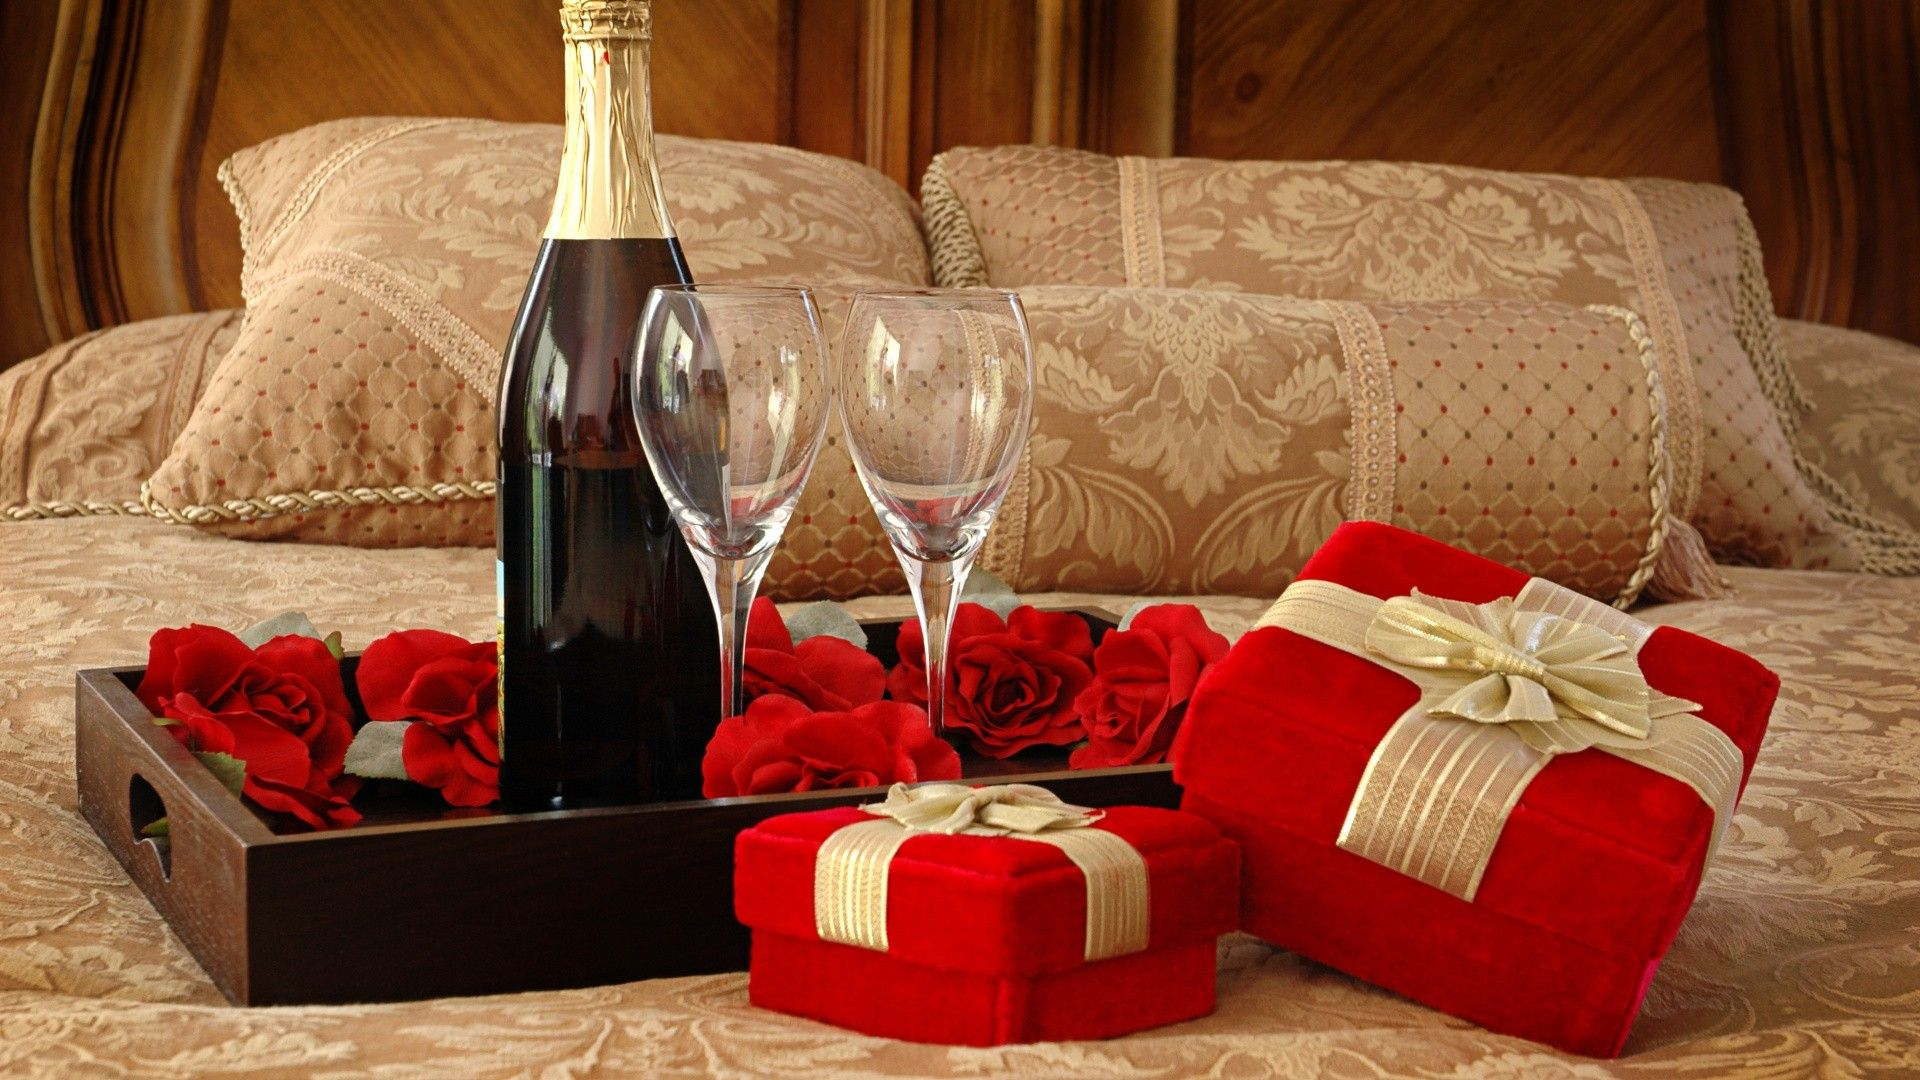 romantic gifts to give your girlfriend